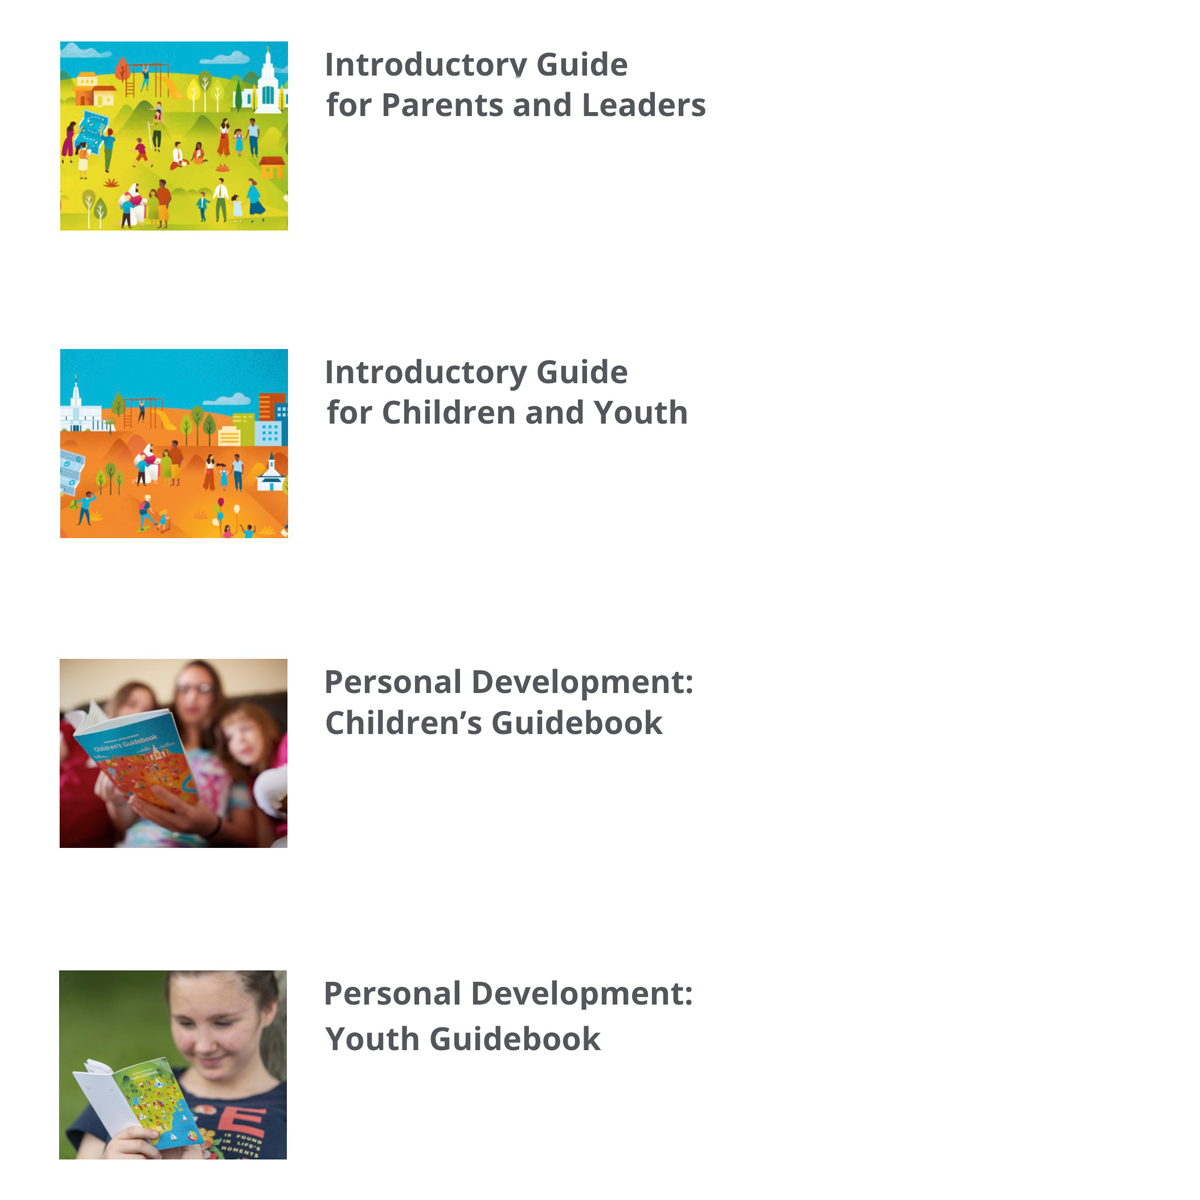 Children and Youth Guides